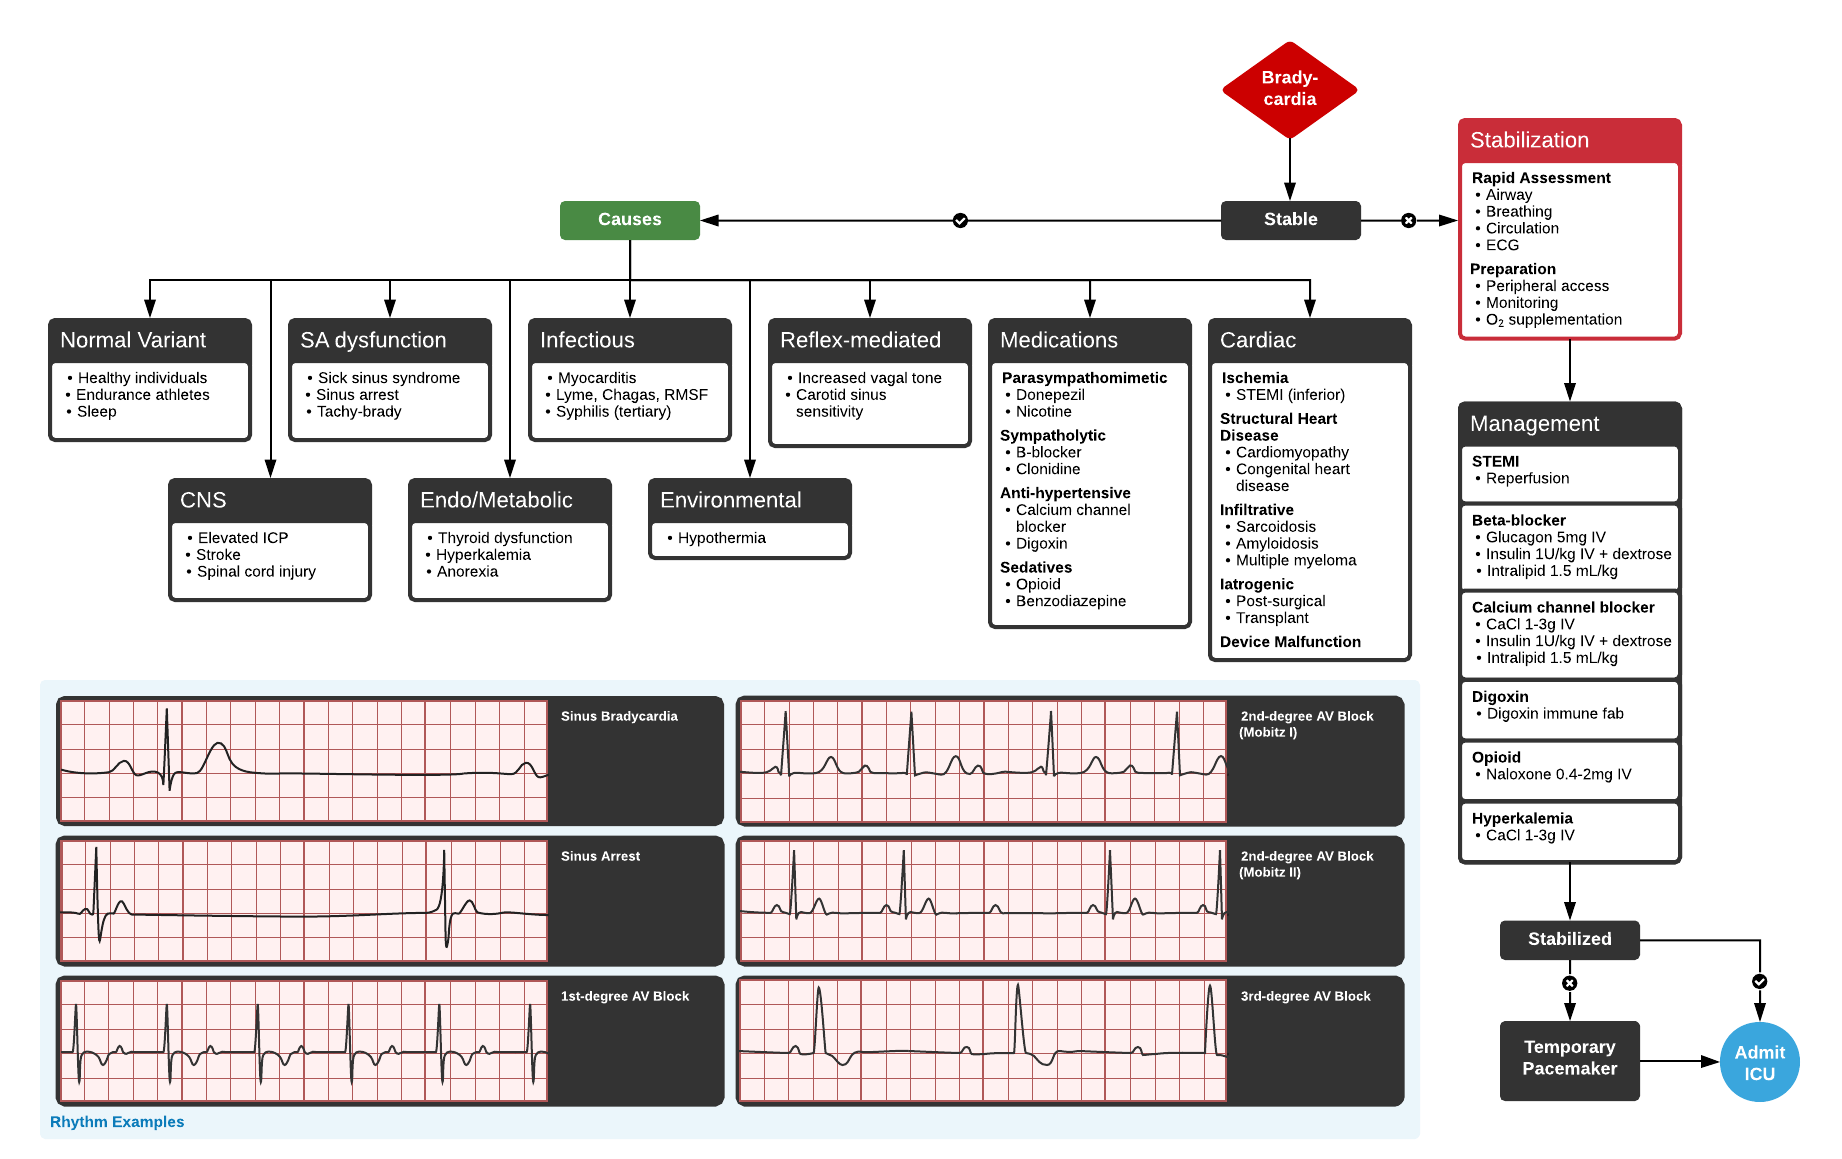 Algorithm for the evaluation and management of bradycardia